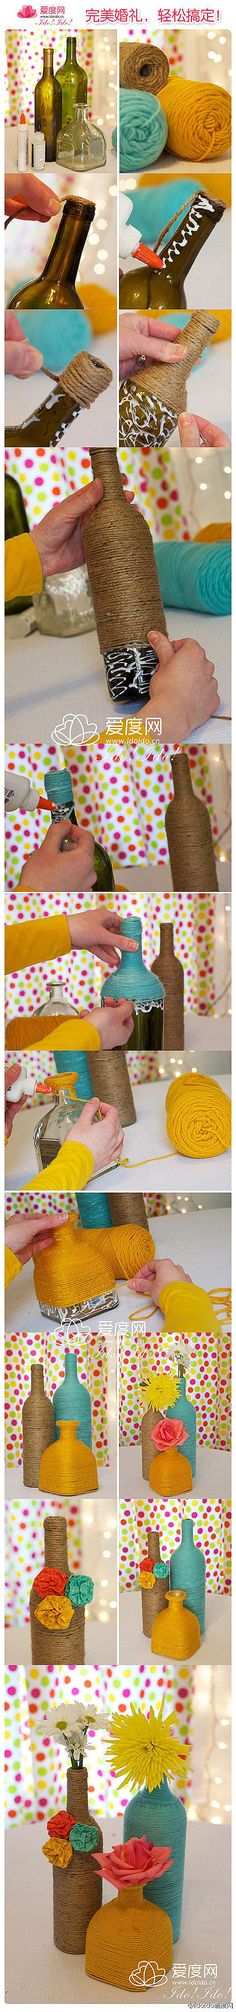 Yarn around bottles... an easy way to dress up your wine bottles or whatever without having to worry about labels coming off!